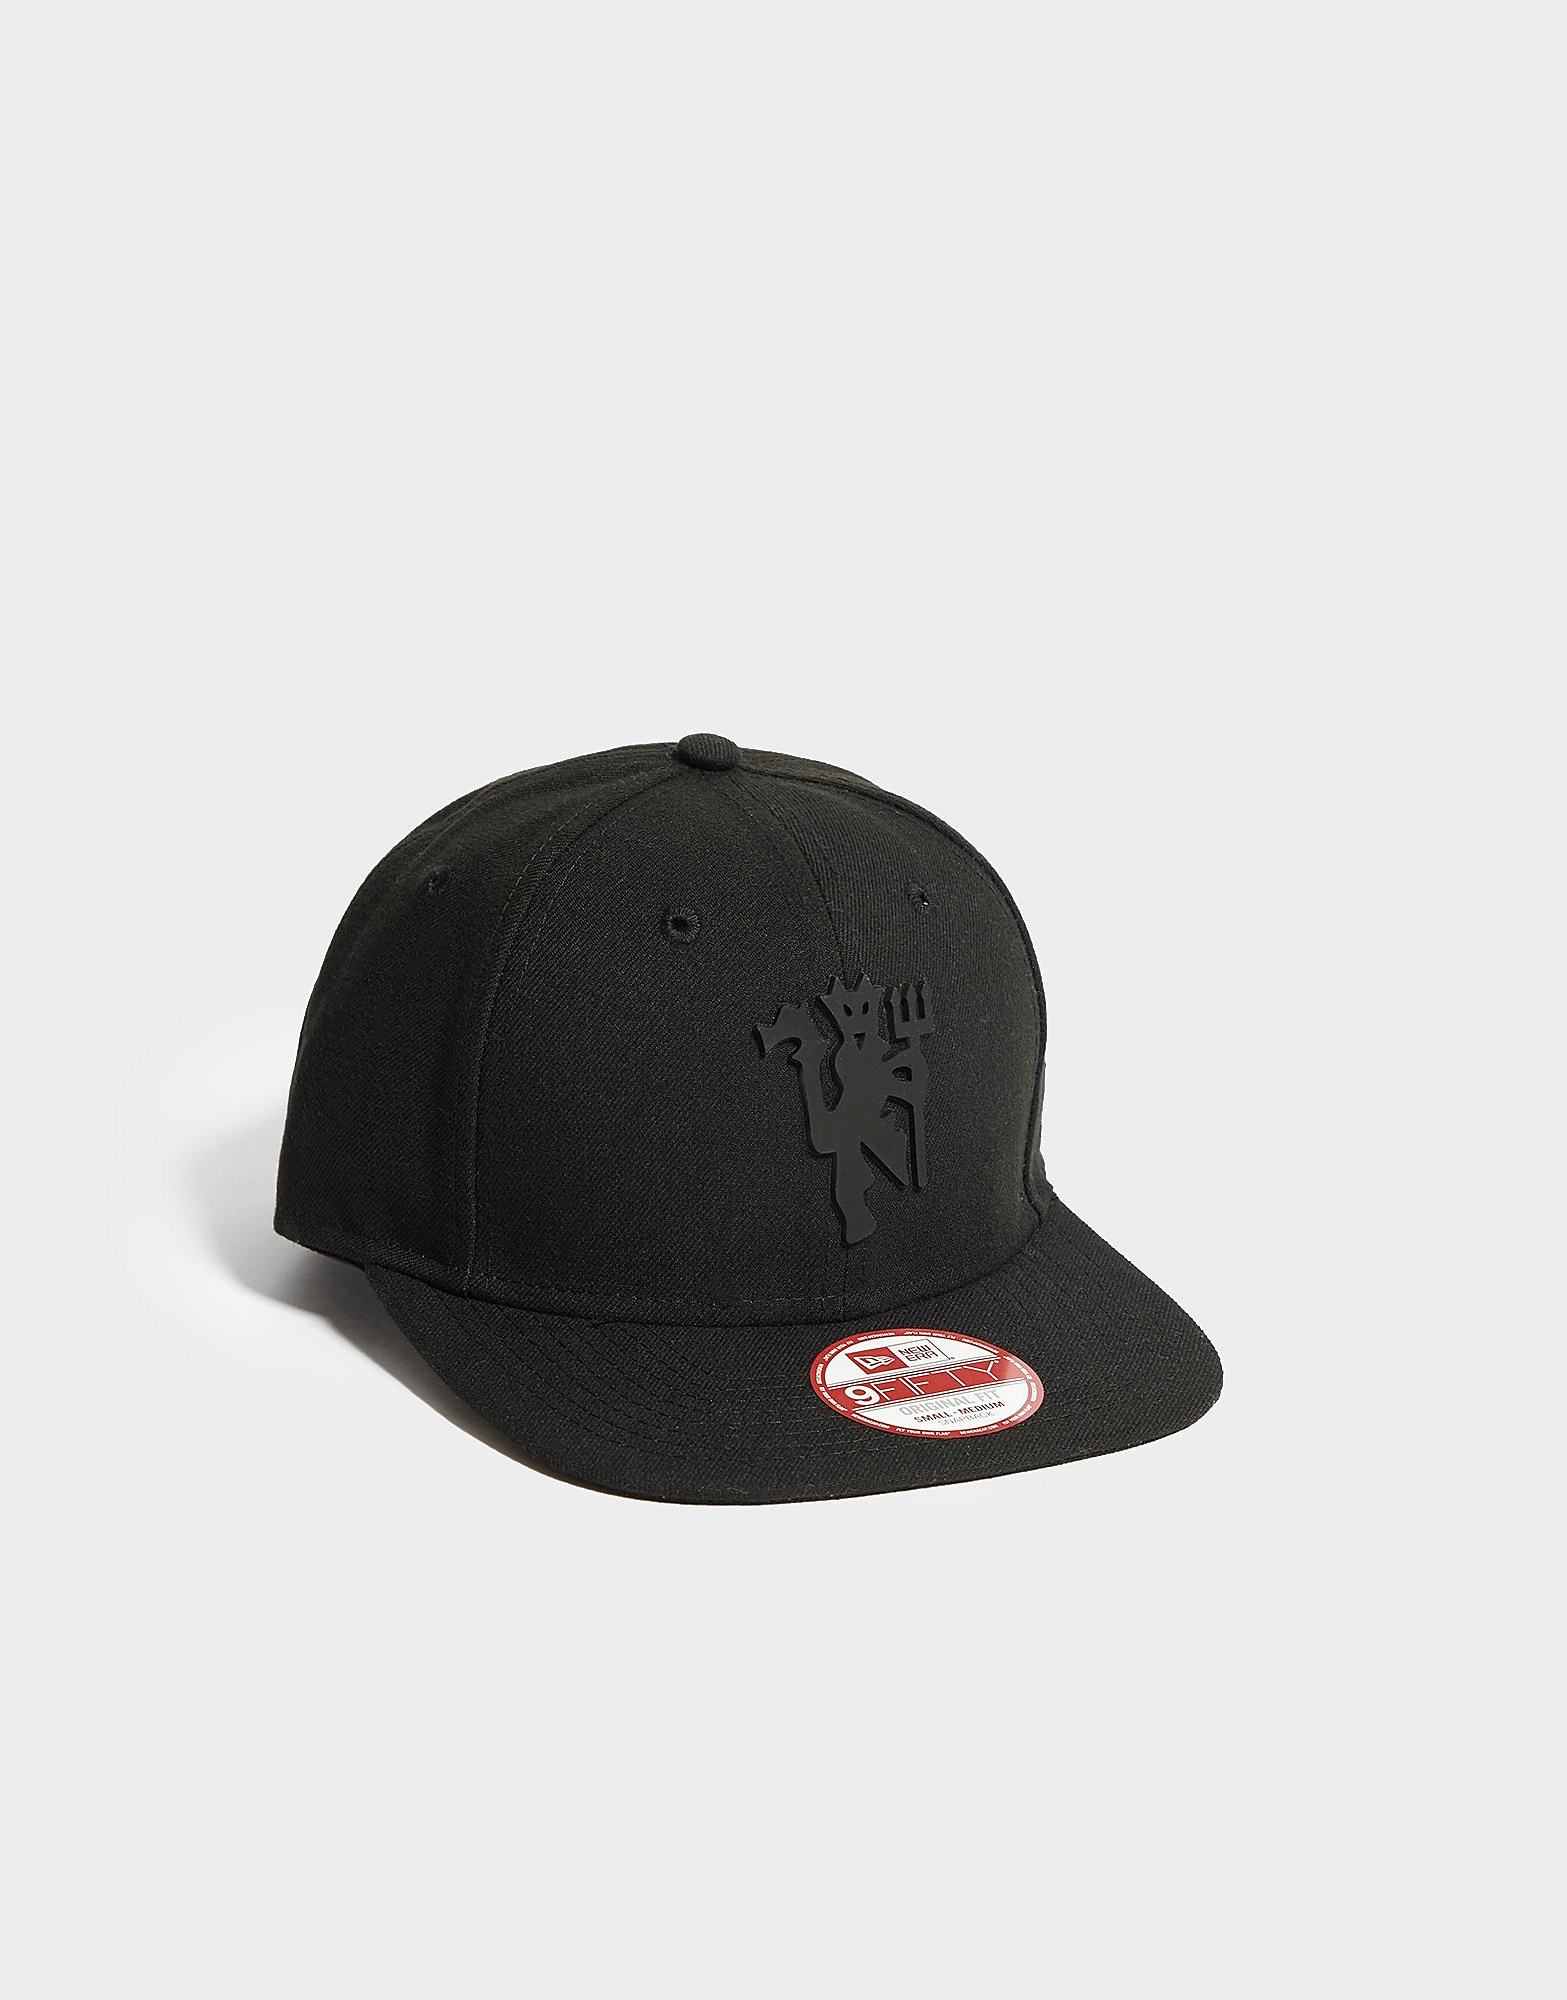 New Era Manchester United Black On Black Snapback Cap